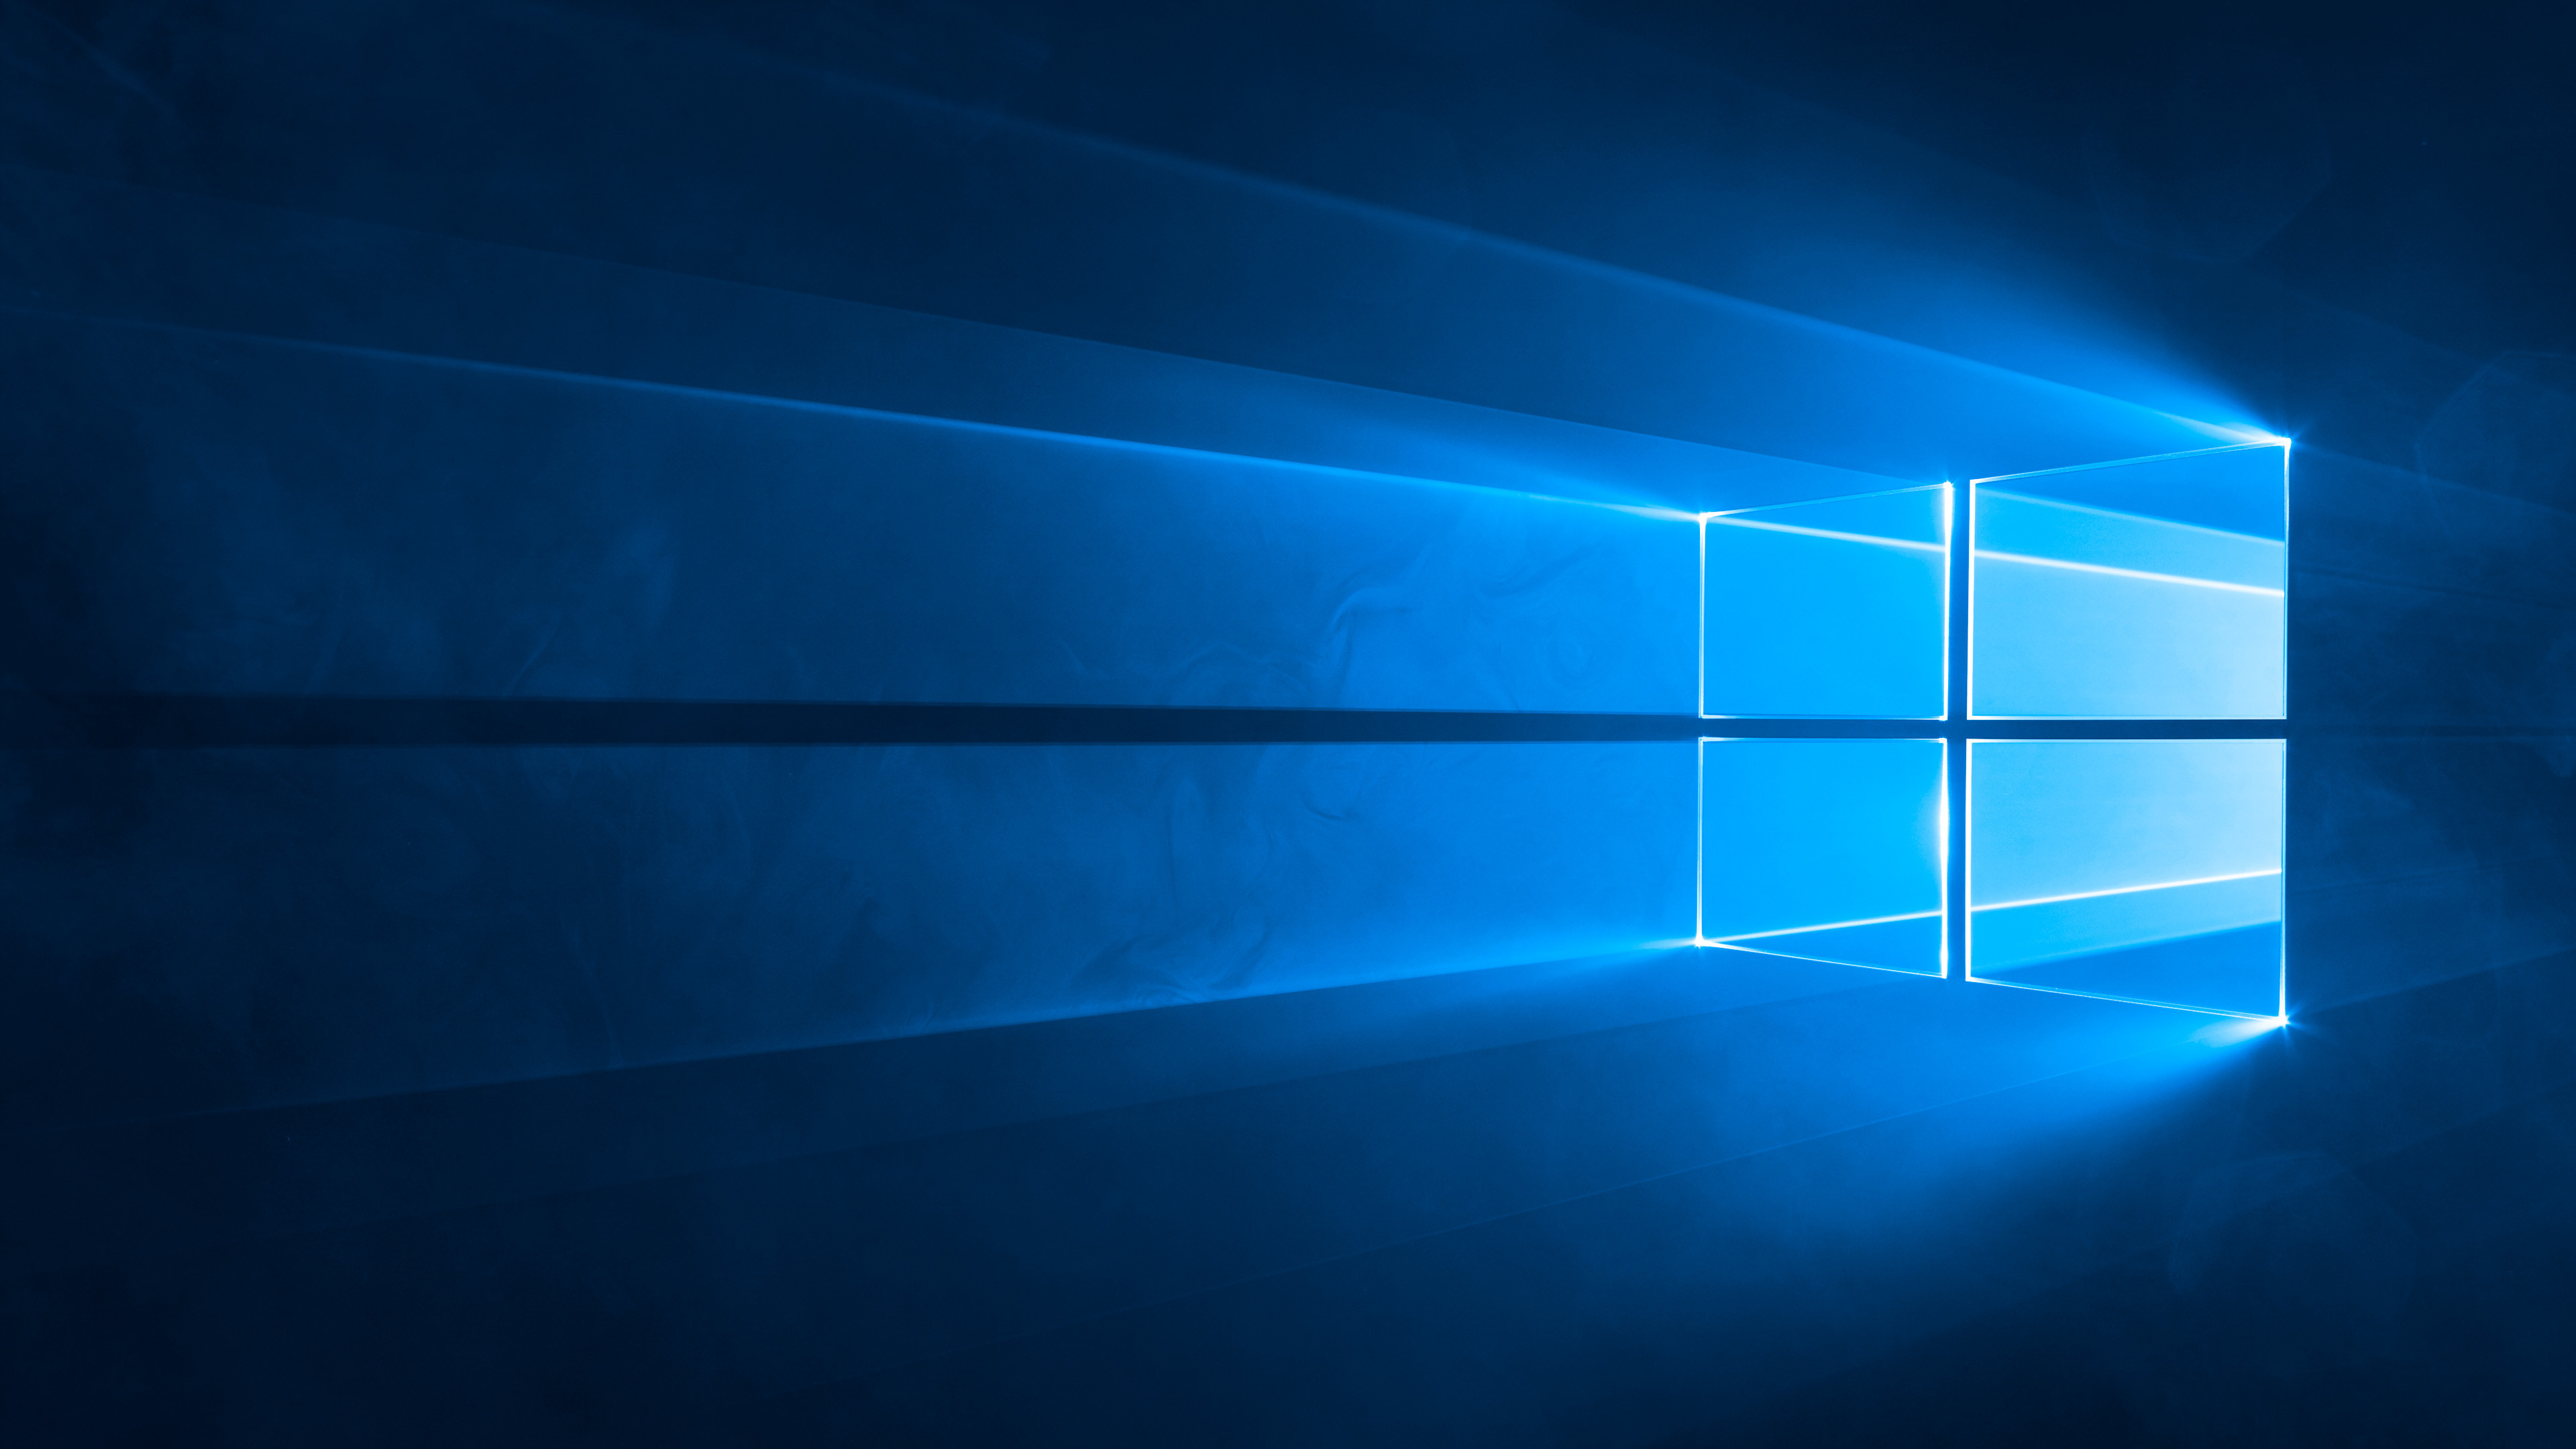 view image. Found on: microsoft-animated-wallpaper-windows-10/